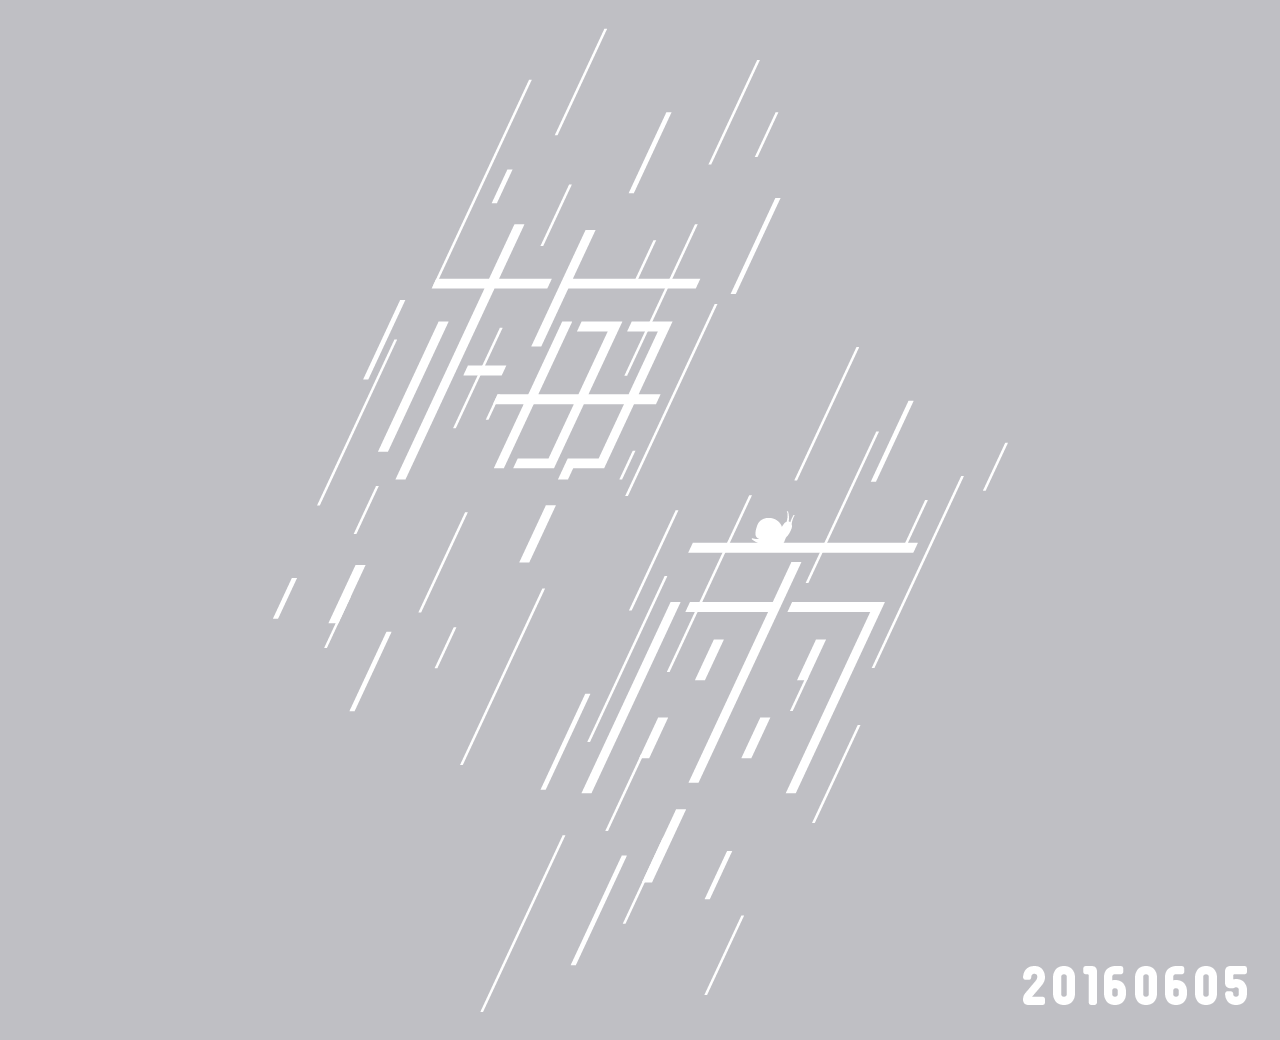 s20160605_2.png